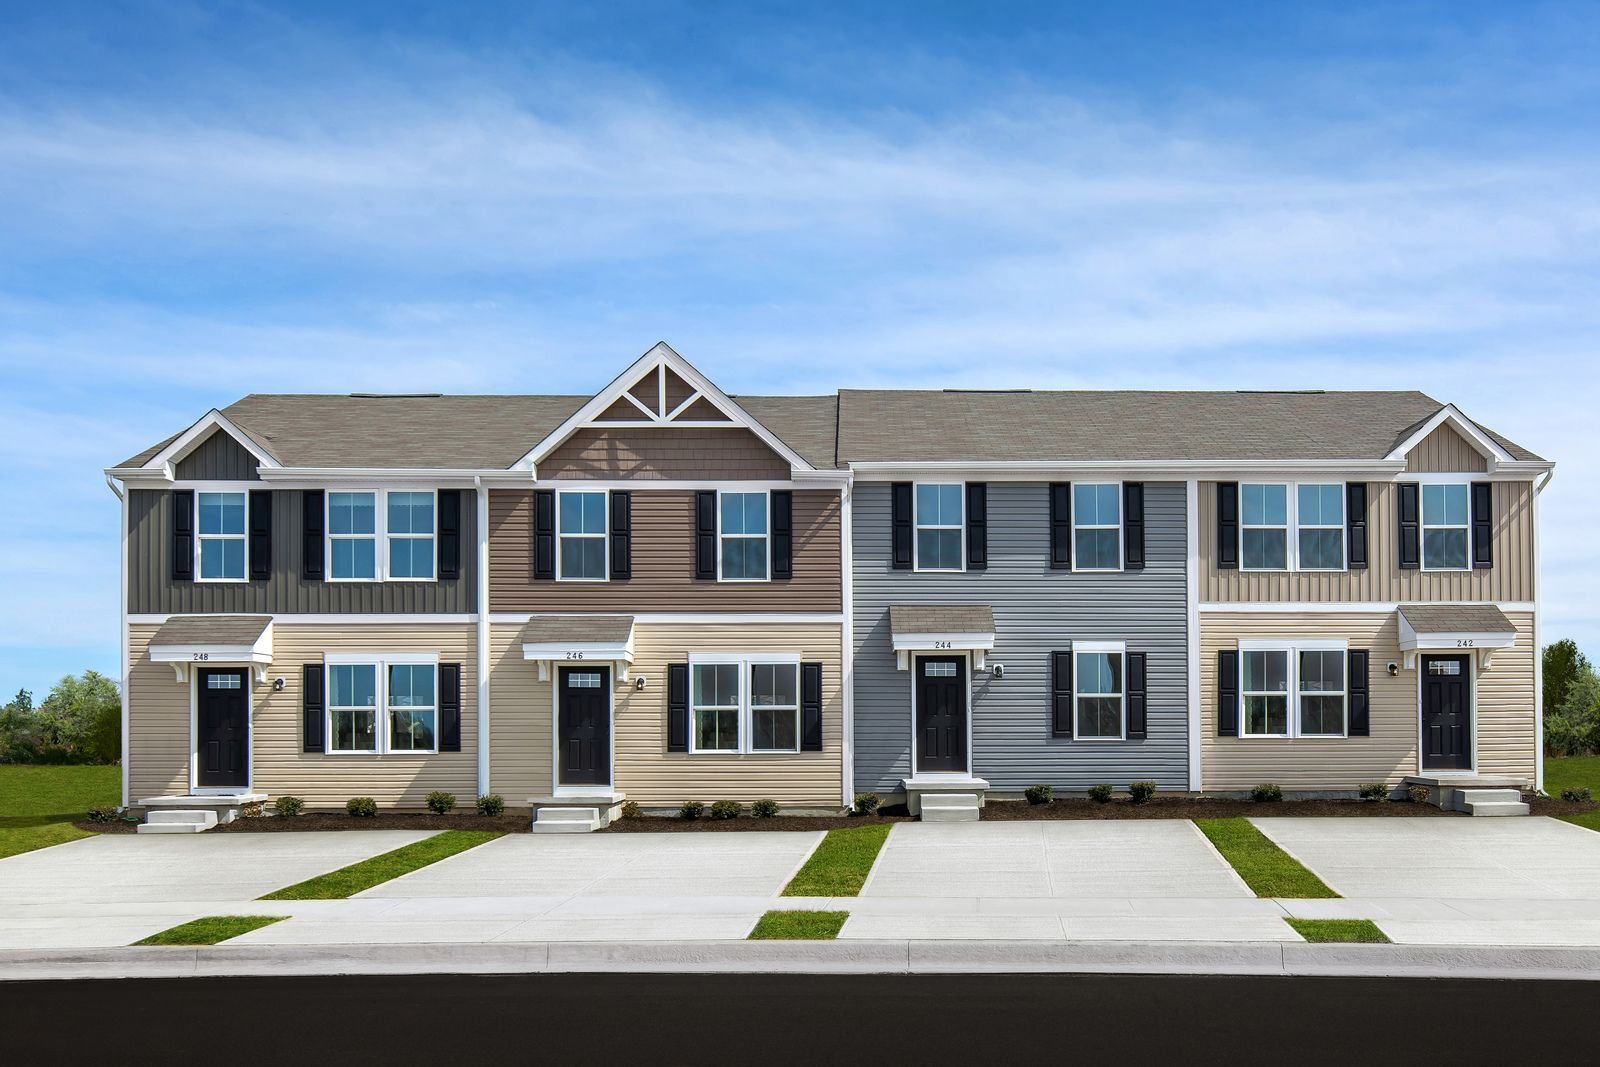 LIMTED HOMESITES ARE BEING RELEASED EVERY MONTH:Join the VIP Listand be notified when new homesites are released in this sought-after community!